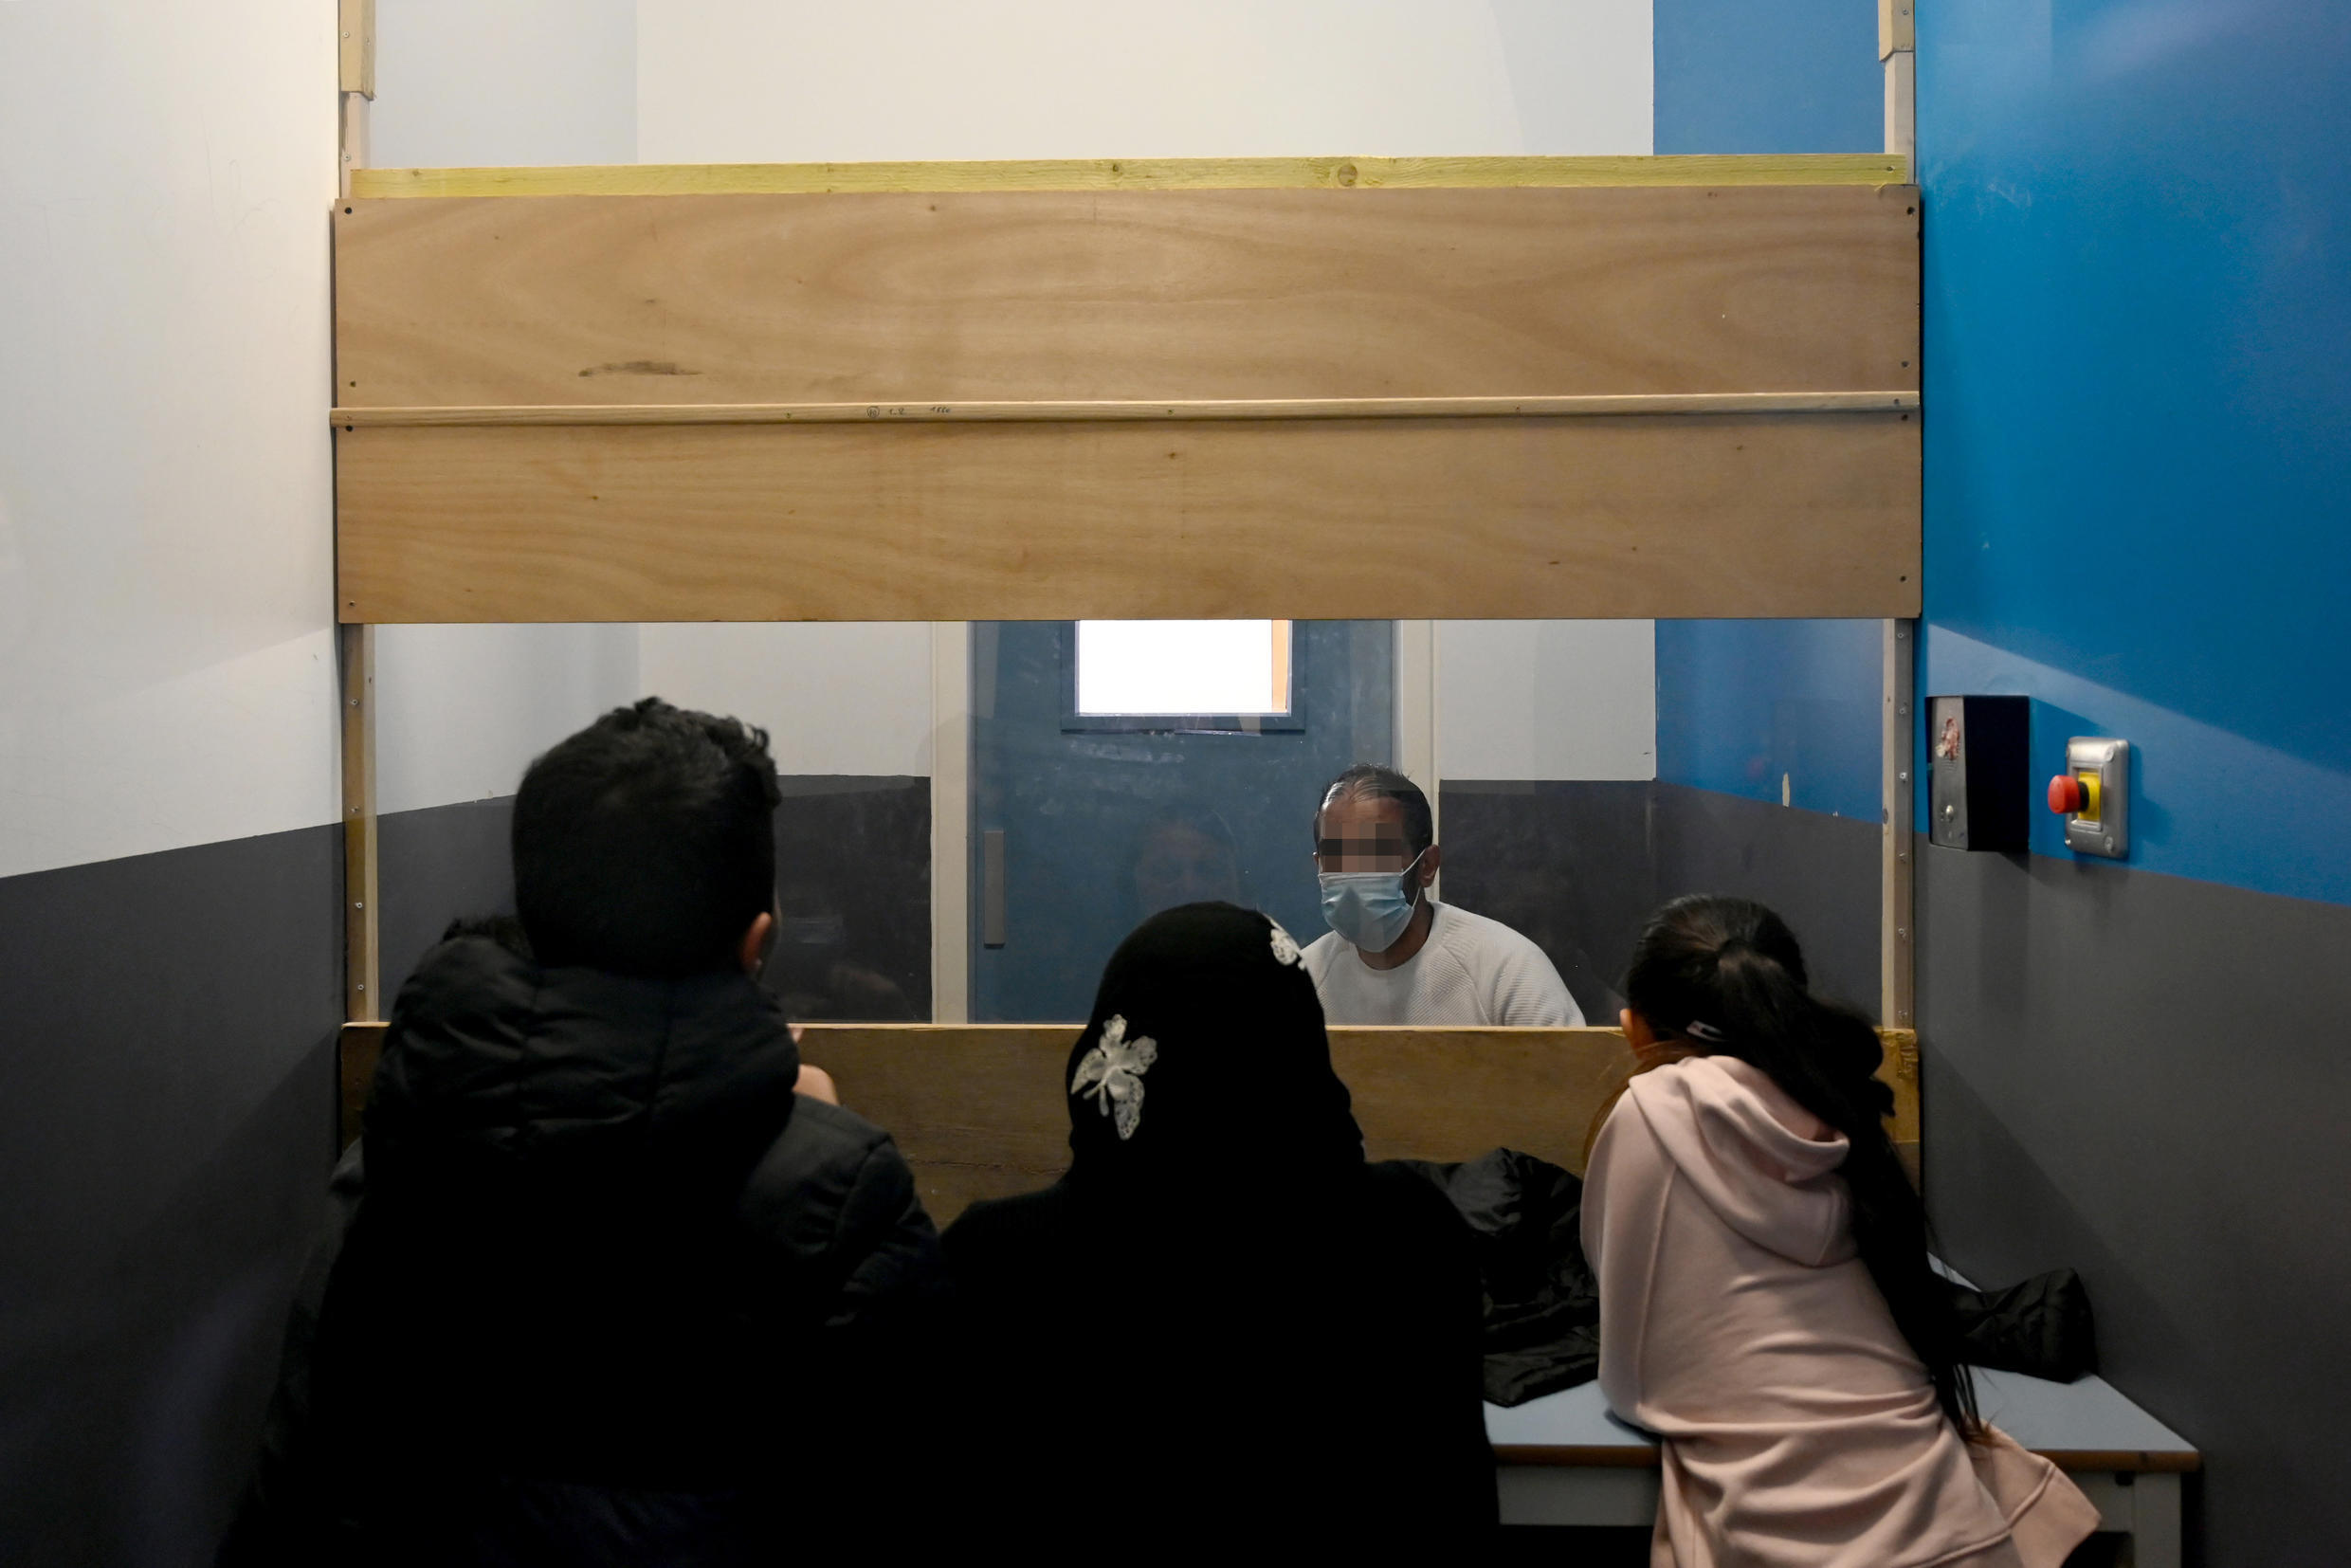 Separated by a window, children visit their father at a Marseille prison for 45 minutes